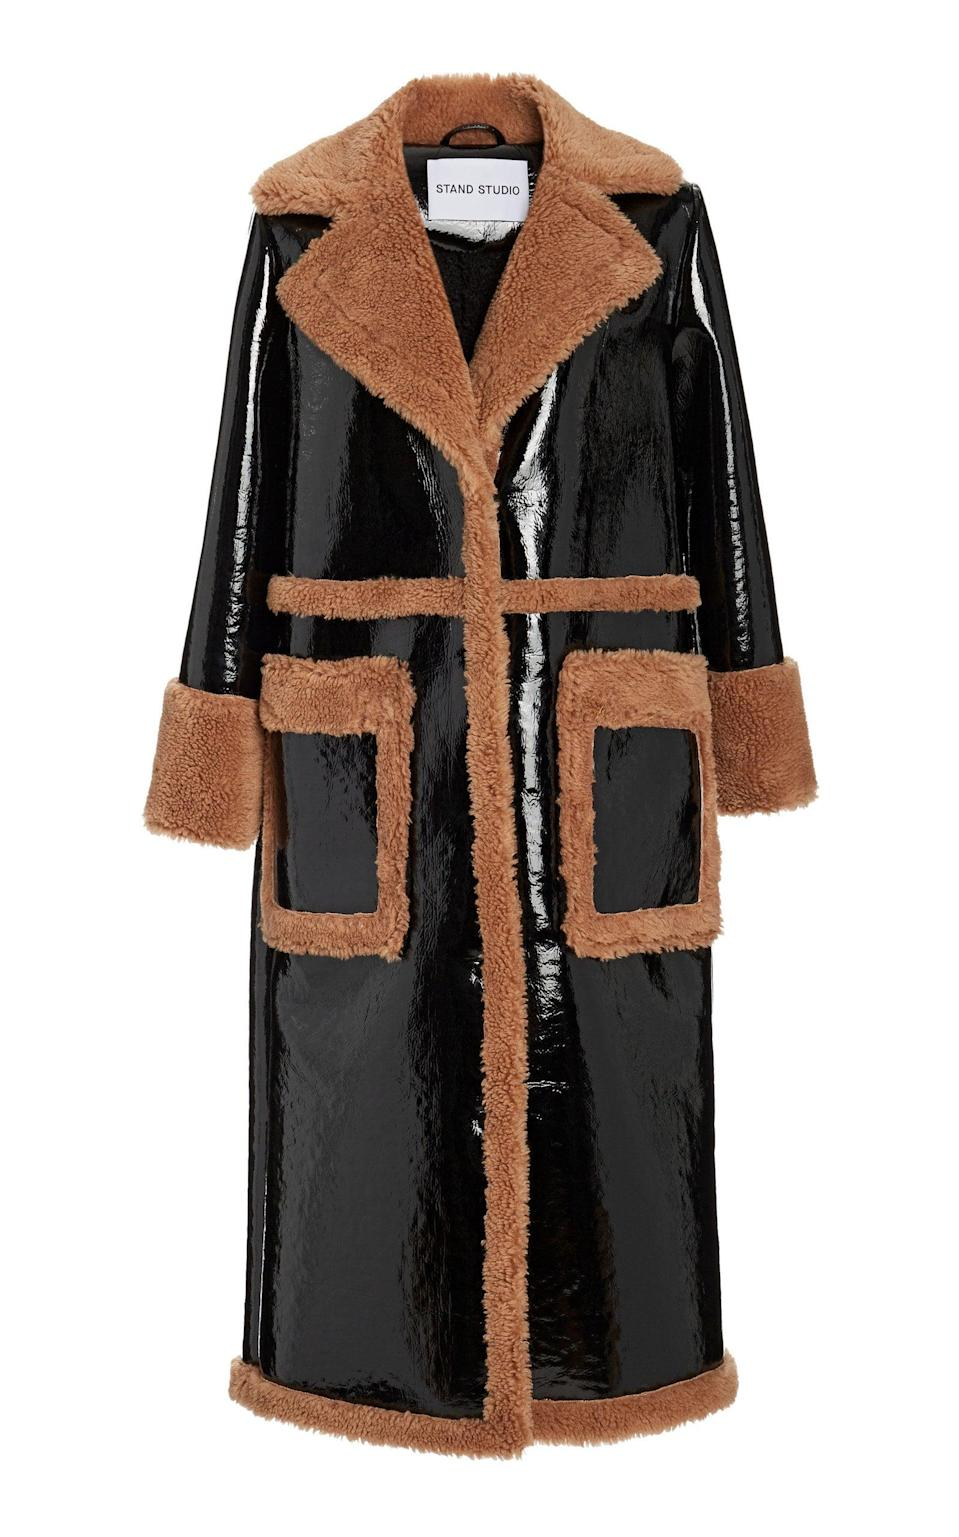 <p>This <span>Stand Studio Aubrey Faux Shearling and Vinyl Coat</span> ($700) is so chic.</p>